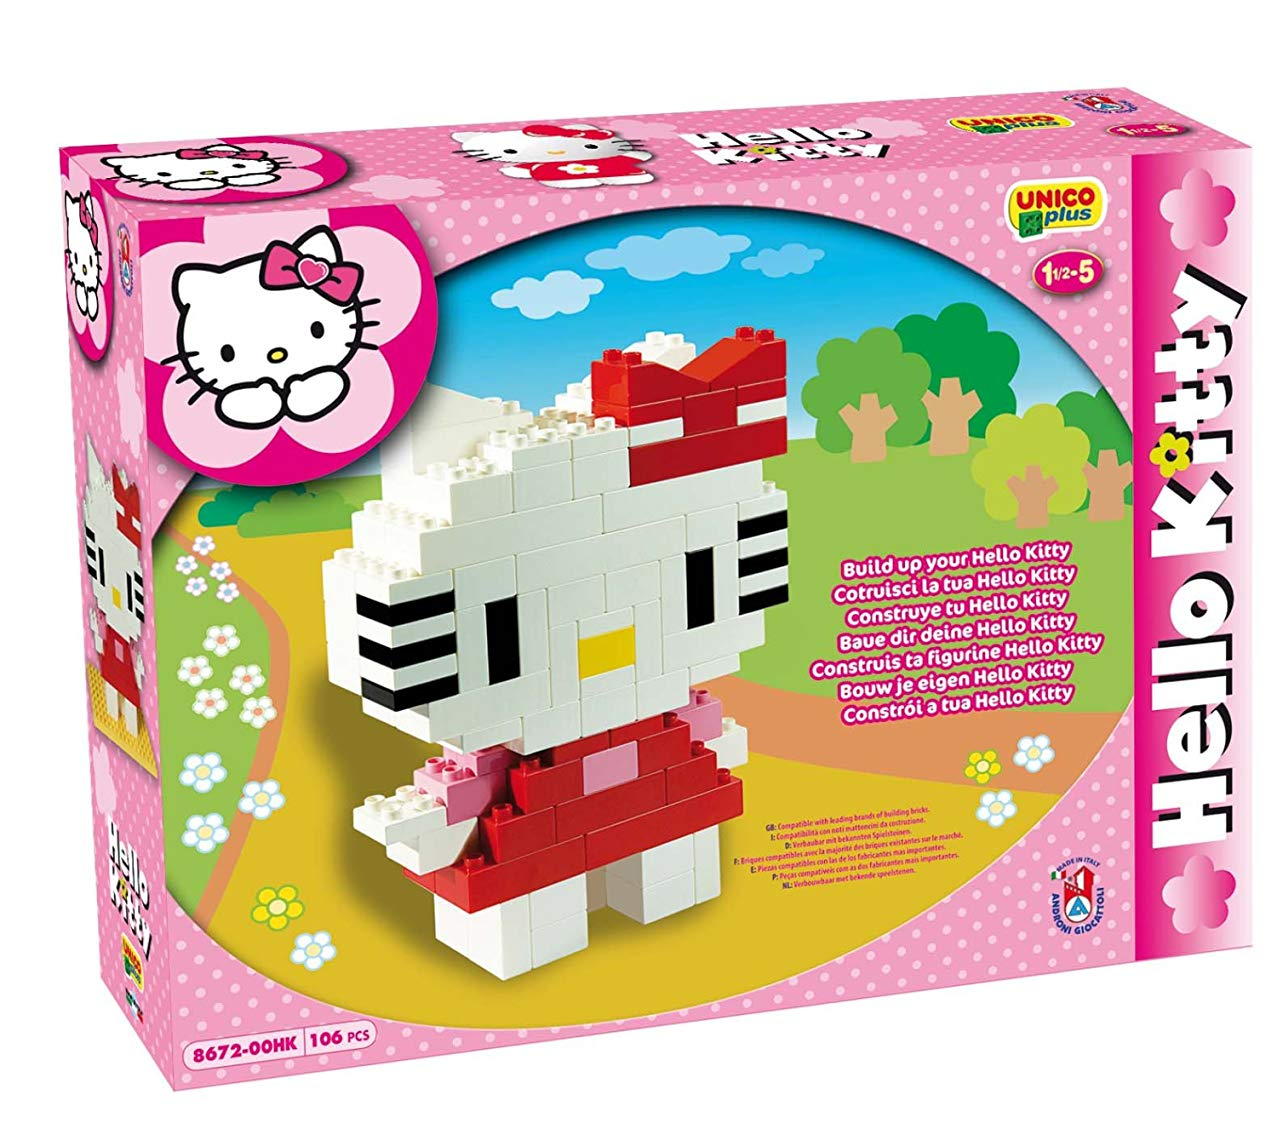 Unico Construction Single Hello kitty-personaggio 106pz 8672